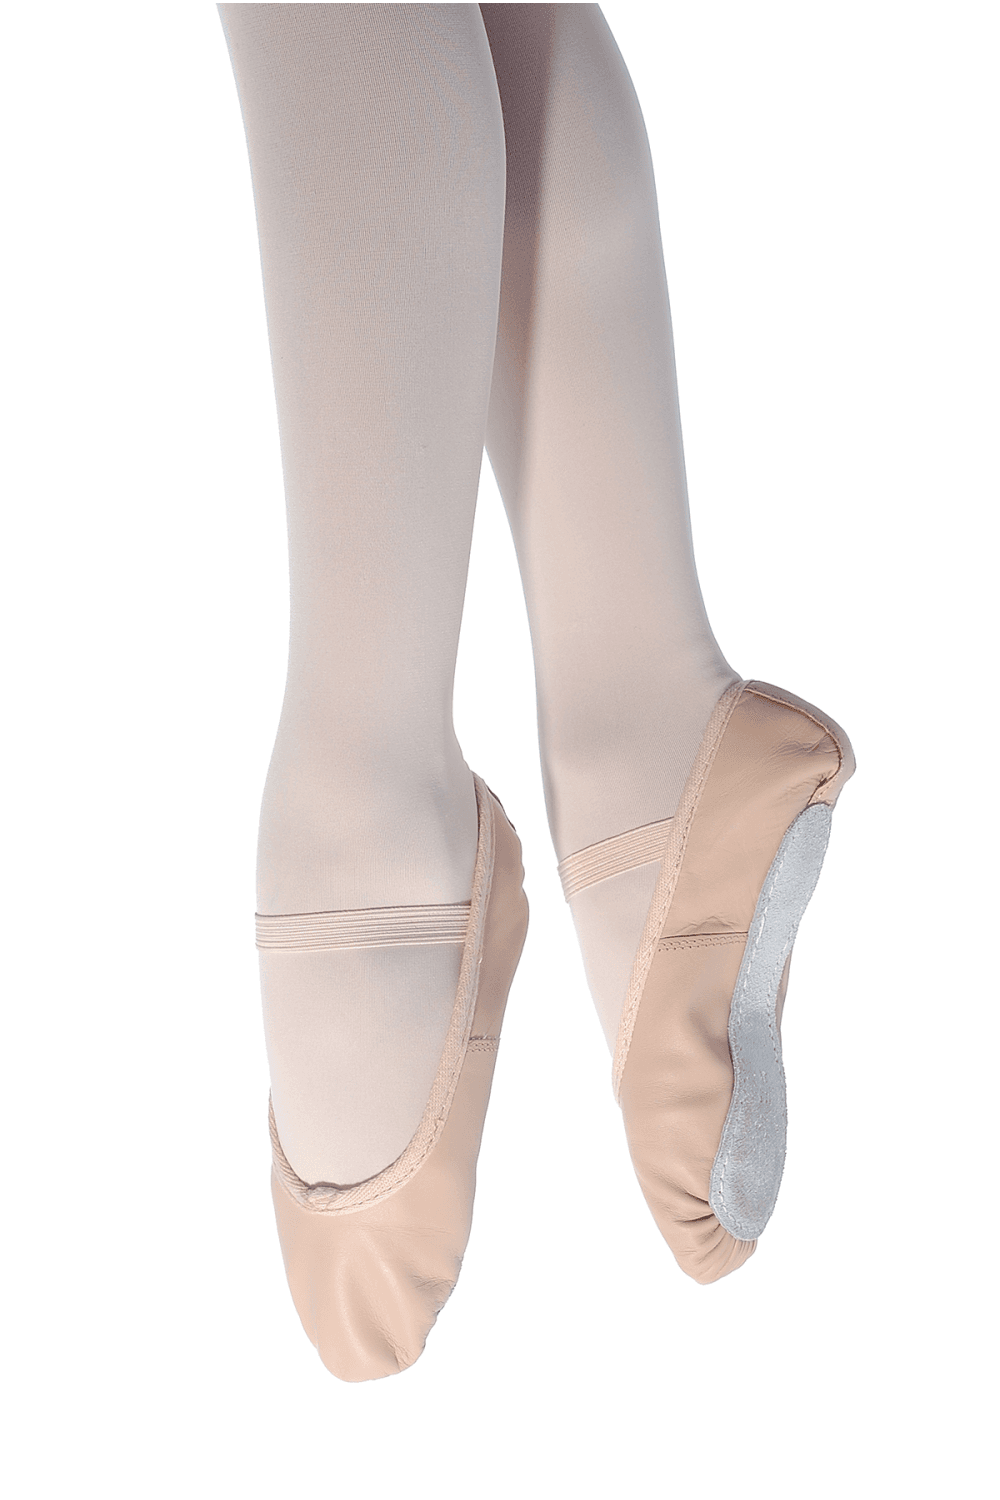 Womens Wide Fit Full Sole Leather Ballet Shoes Roch Valley Wide Fit Full Sole Leather Ballet Shoes